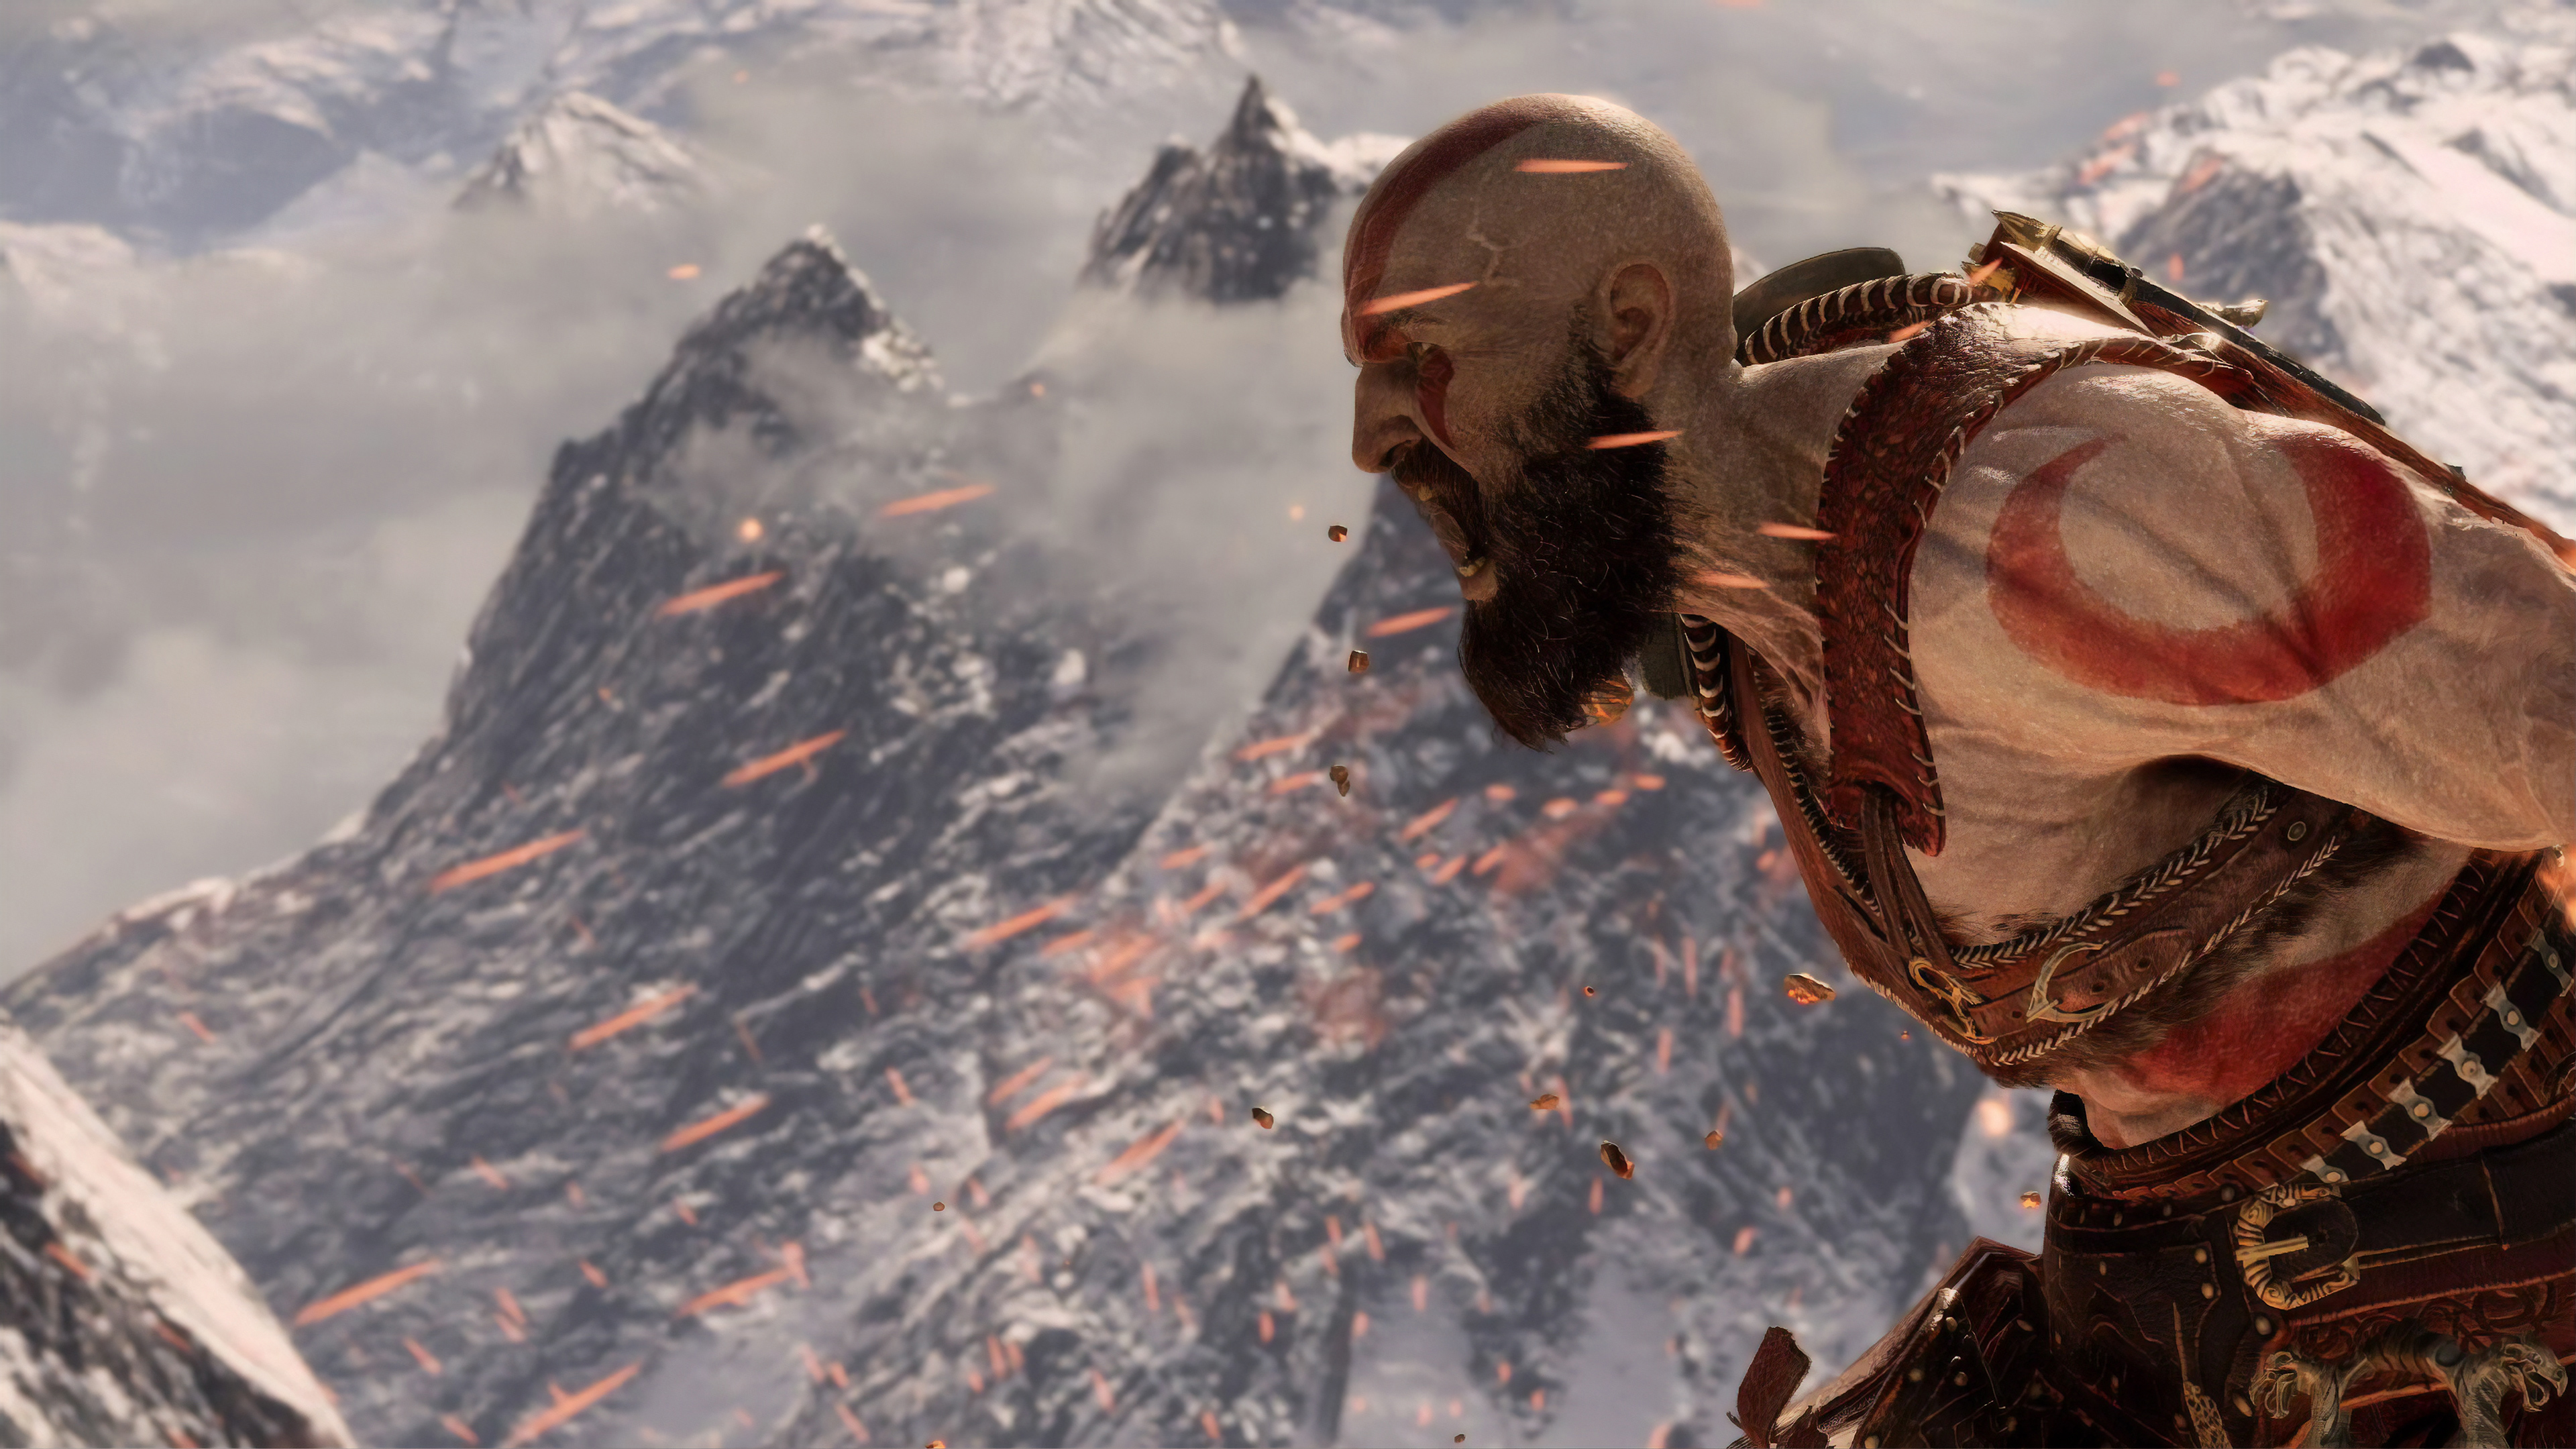 2019 god of war 4 1559798153 - 2019 God Of War 4 - hd-wallpapers, god of war wallpapers, god of war 4 wallpapers, games wallpapers, 4k-wallpapers, 2019 games wallpapers